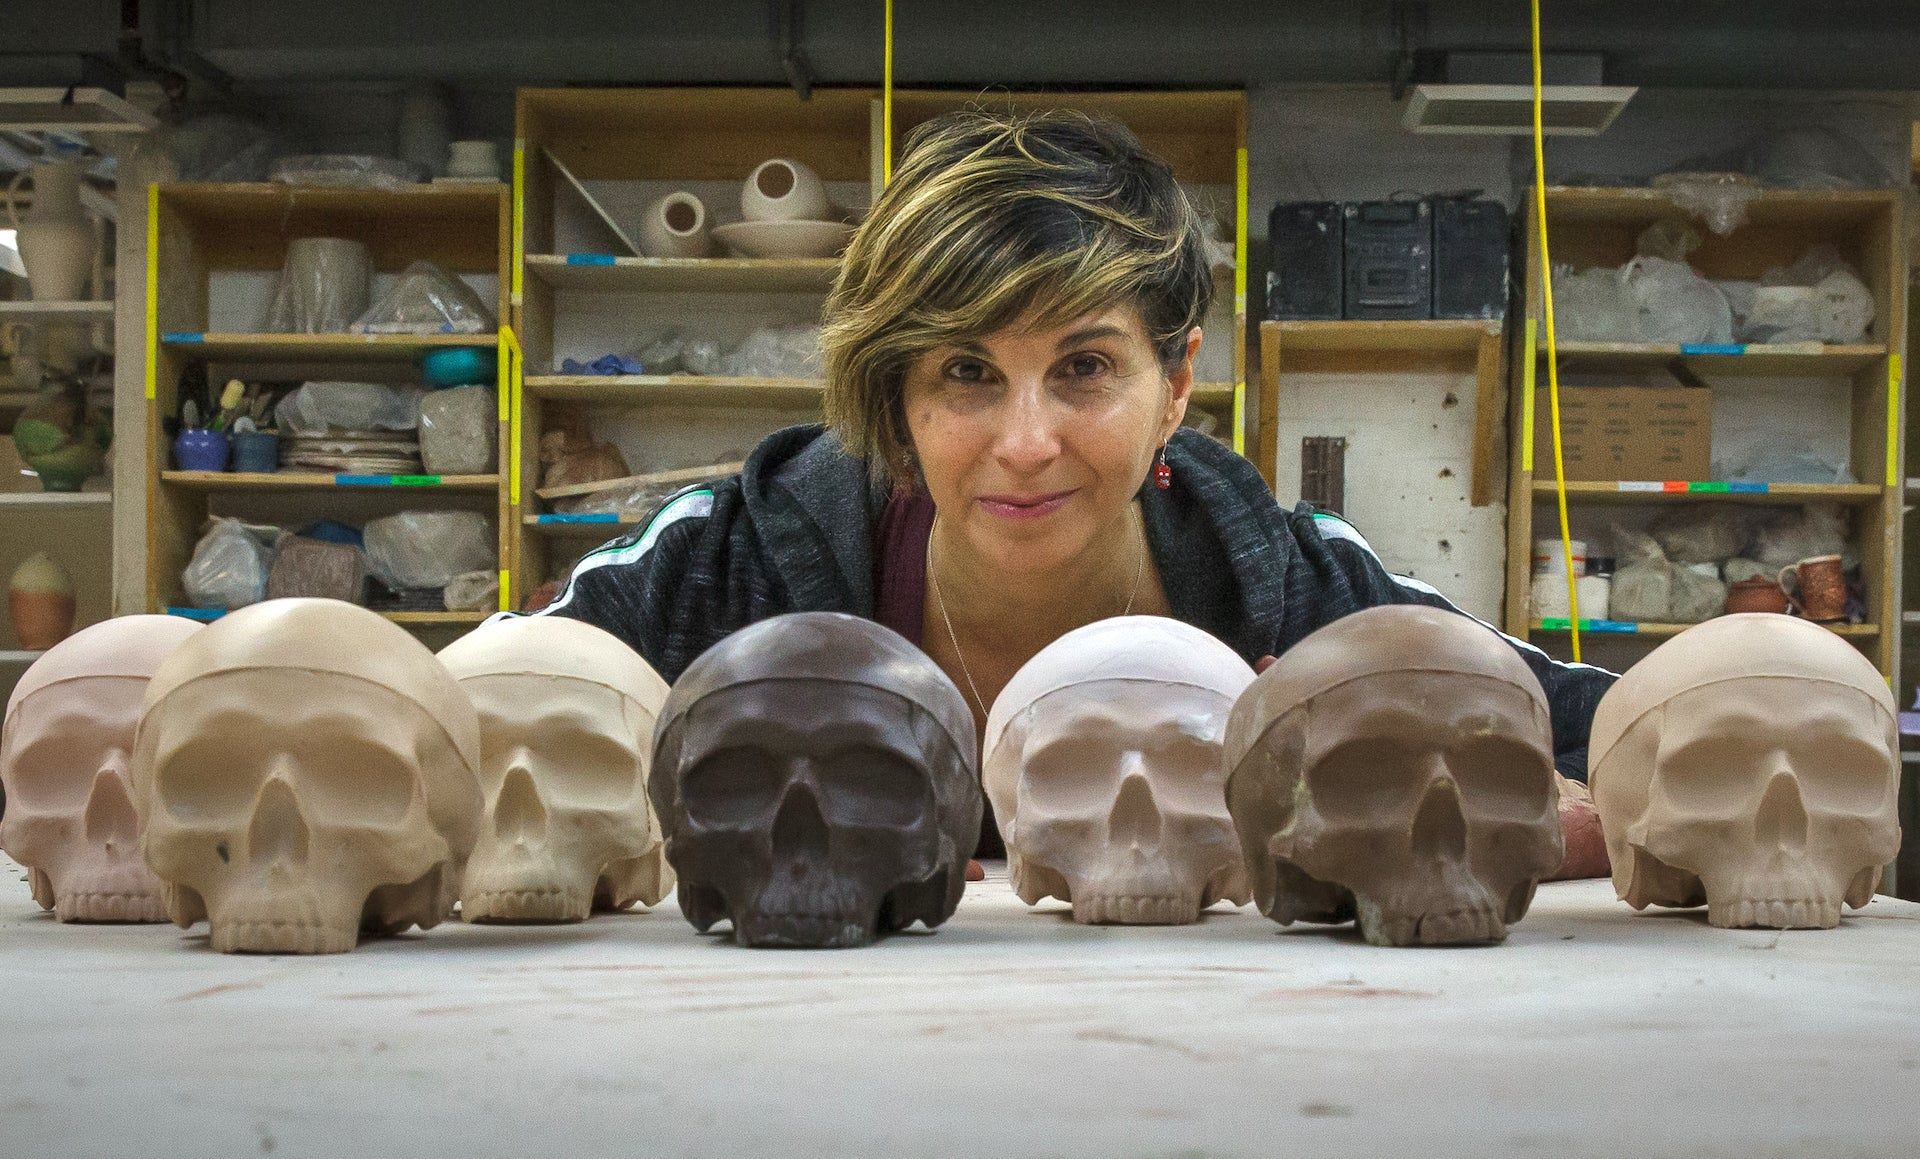 The master ceramicist with her work, Colored Skulls, during her 2016 artist residency at Visual Arts Center in Richmond, Virginia. Photo © Robert Hunter